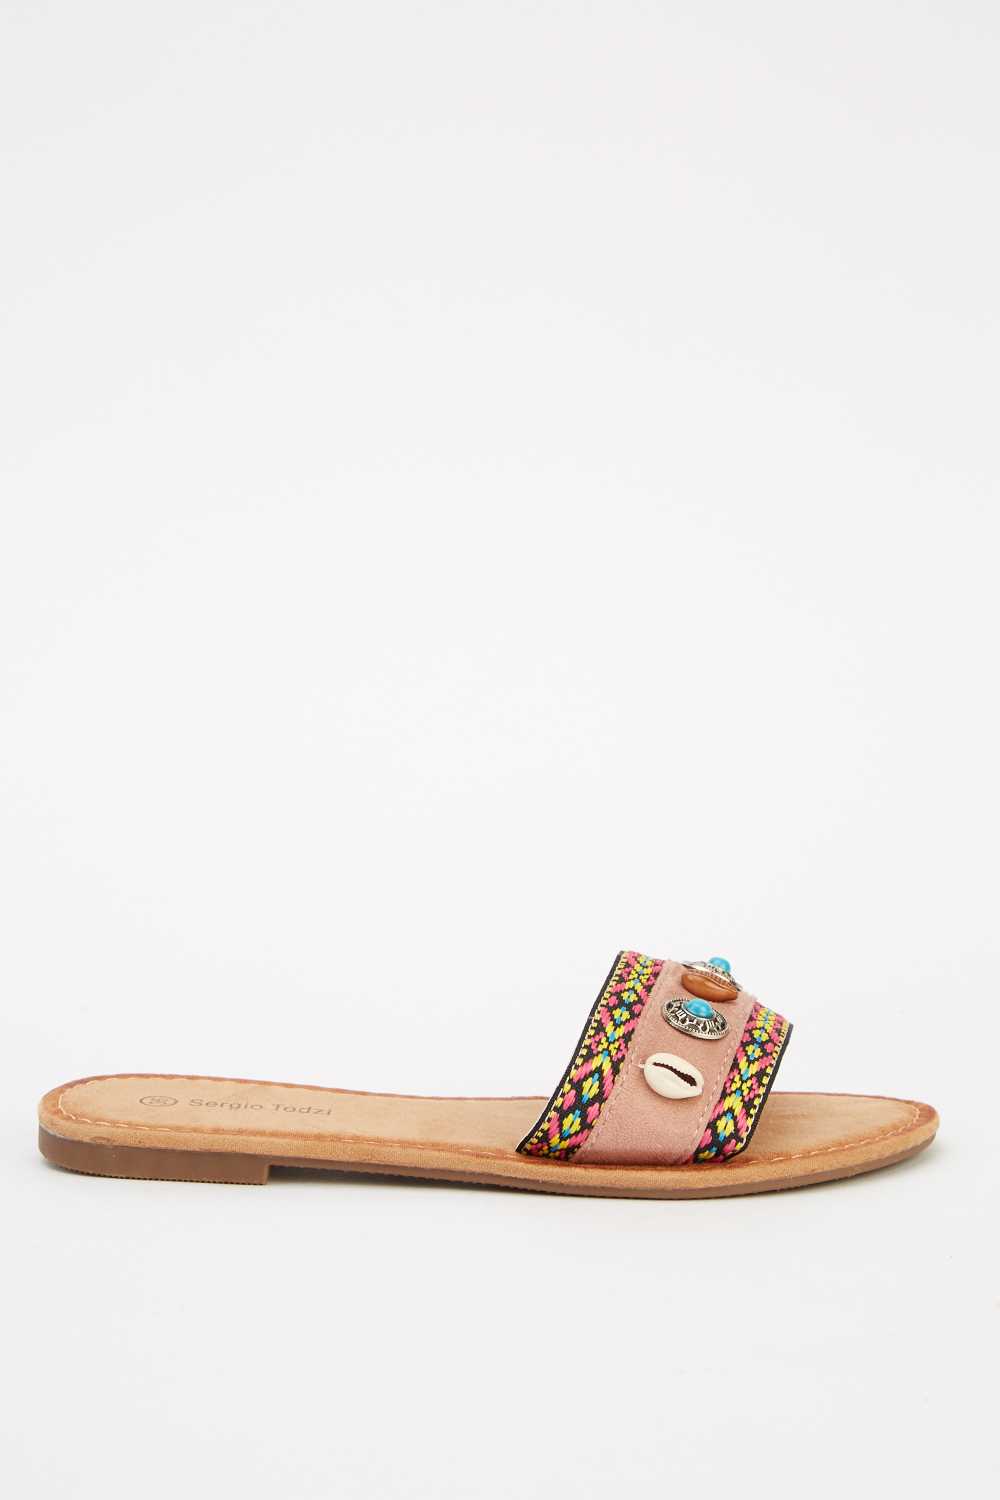 973071bf0 Embroidered Flat Sandals - 6 Colours - Just £5